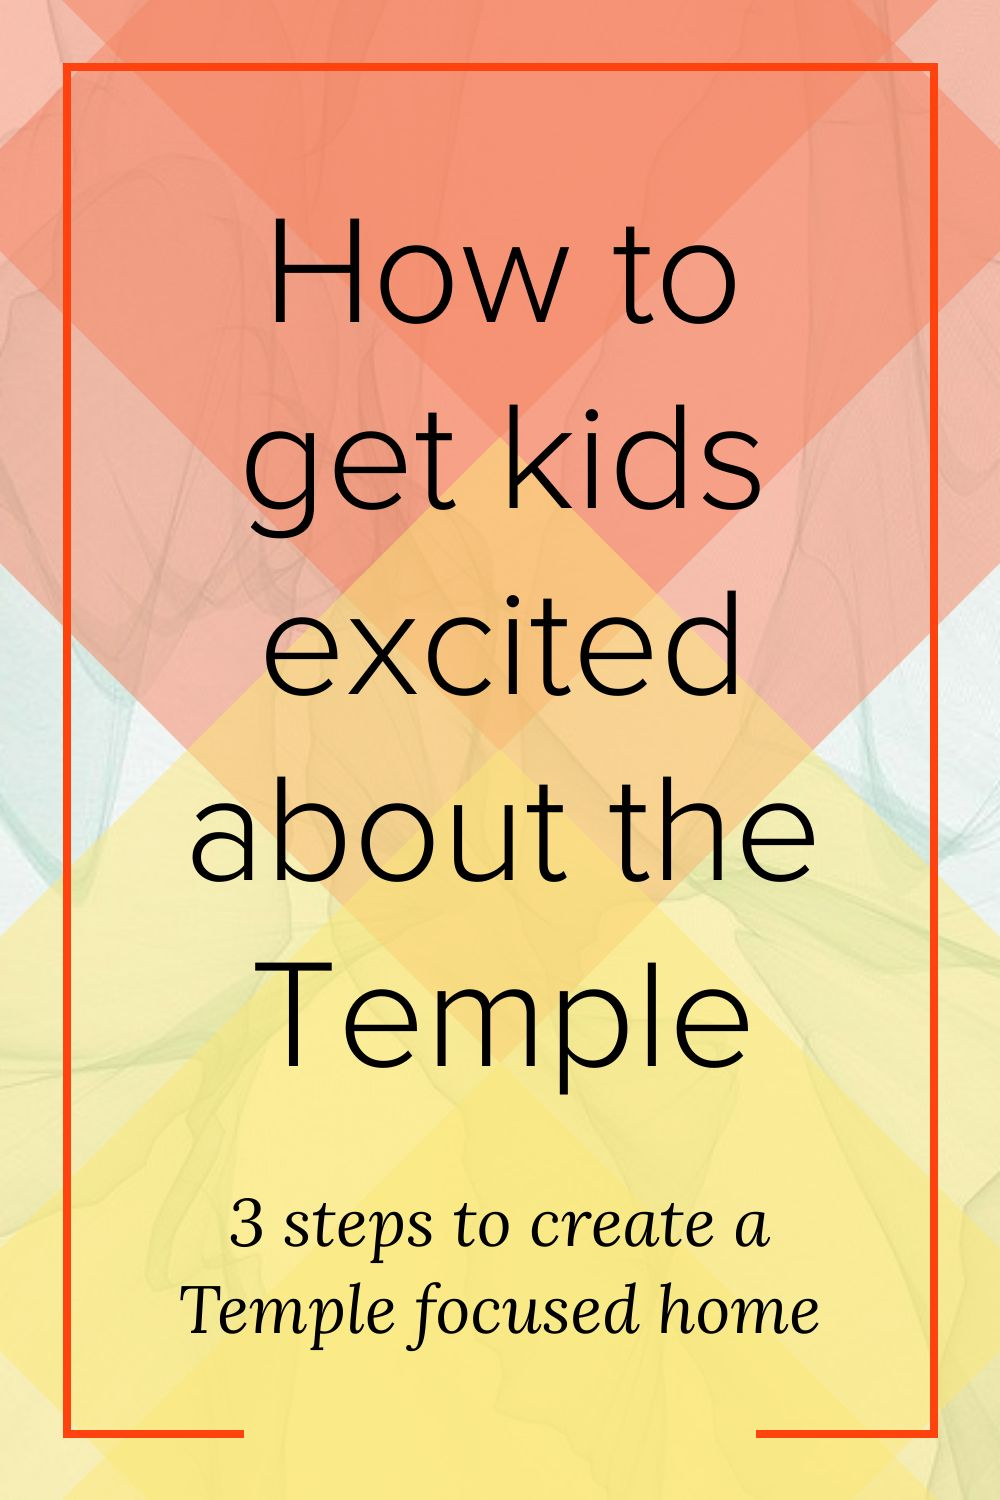 How to get kids excited about the Temple: 3 steps to create a Temple focused home